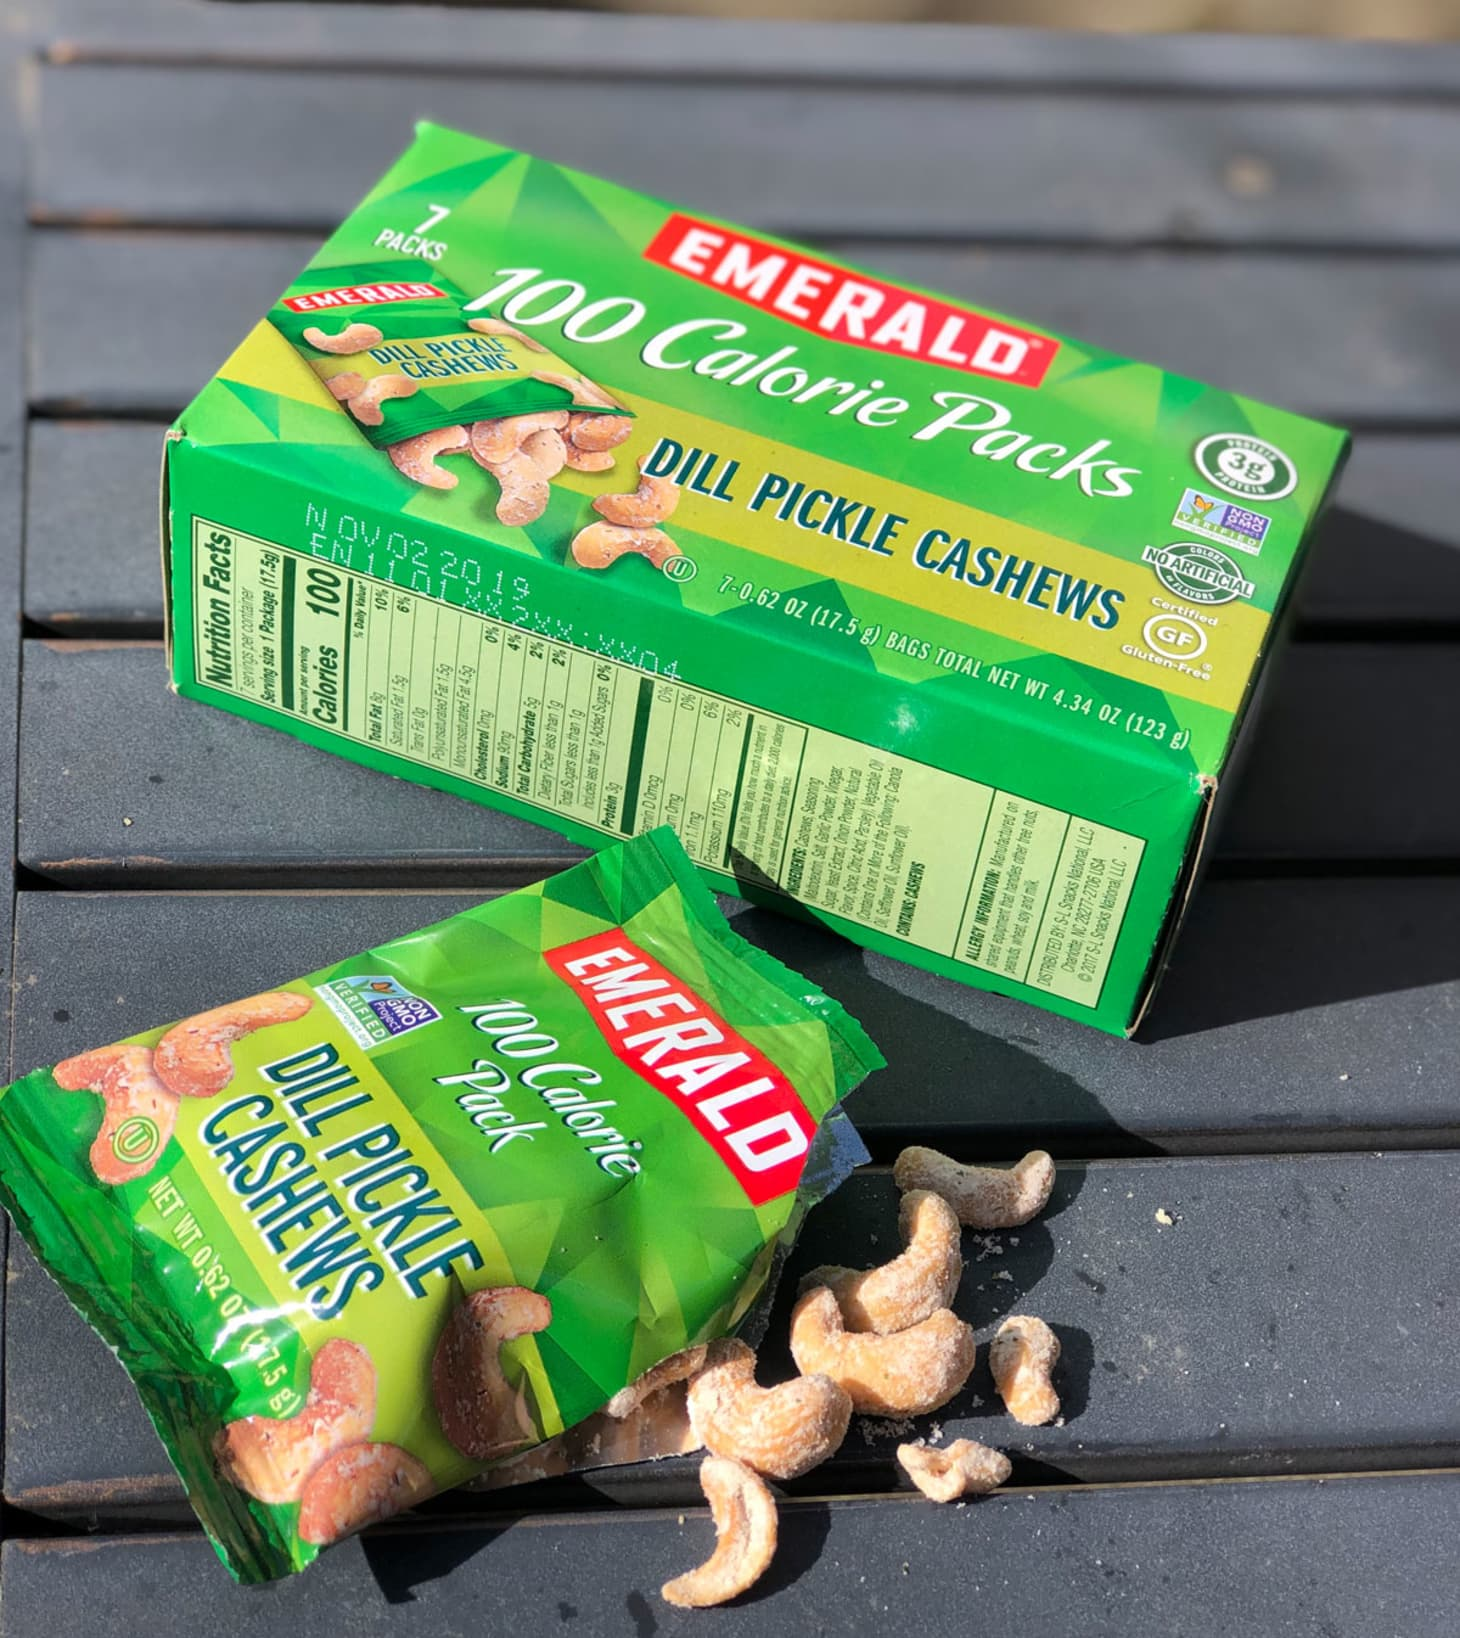 Pickle Flavored Groceries - Chips, Nuts, Snacks | Kitchn